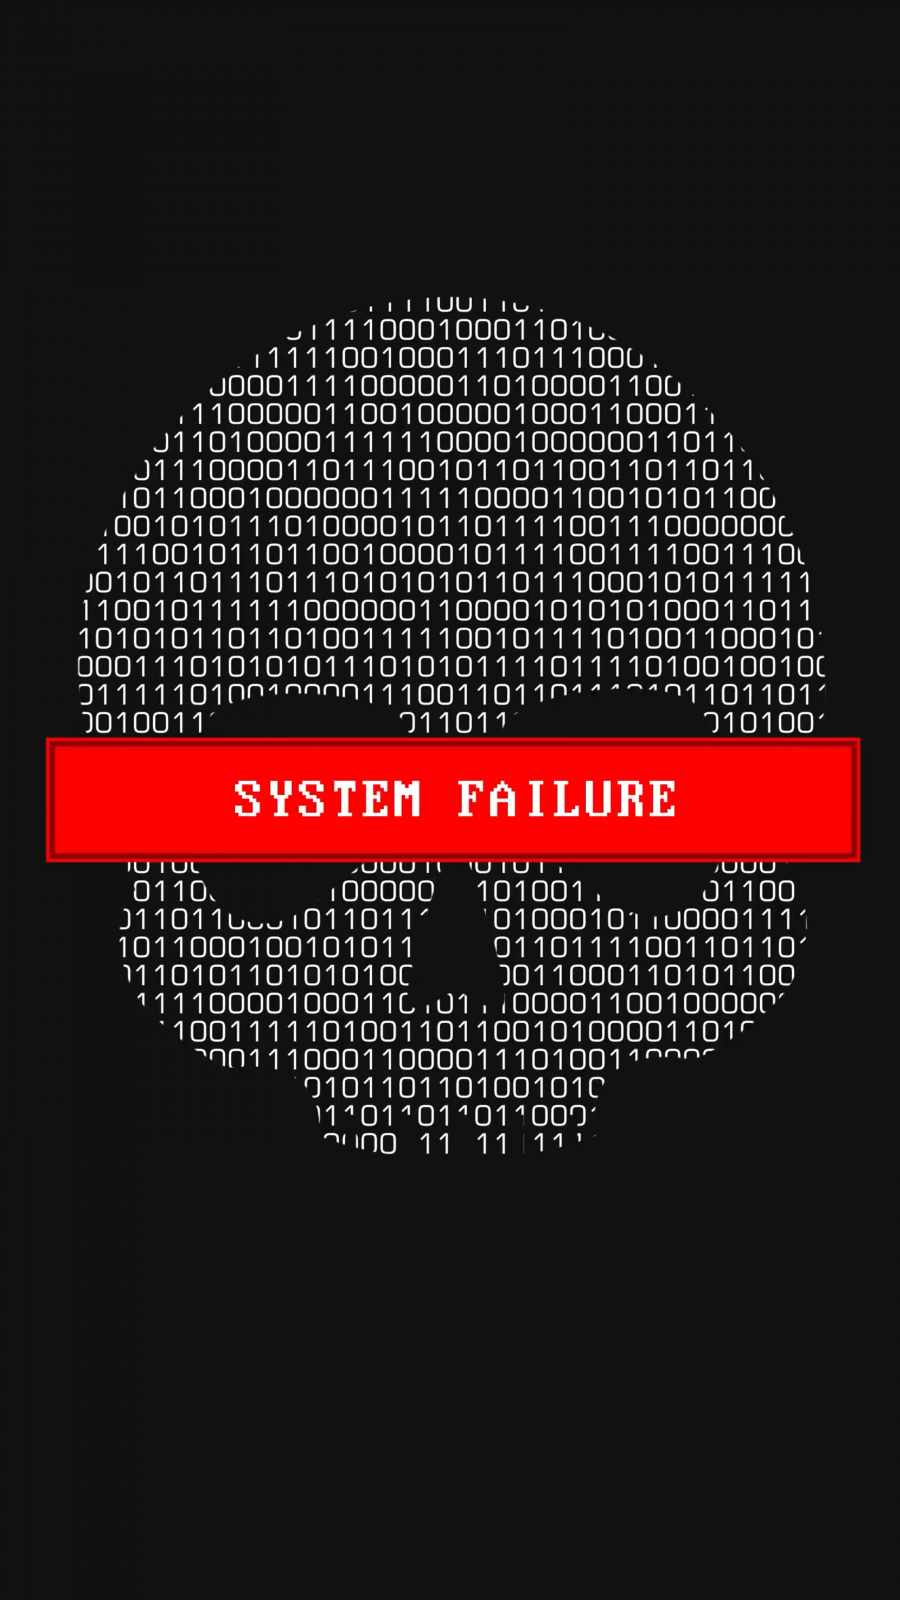 System Failure iPhone Wallpaper